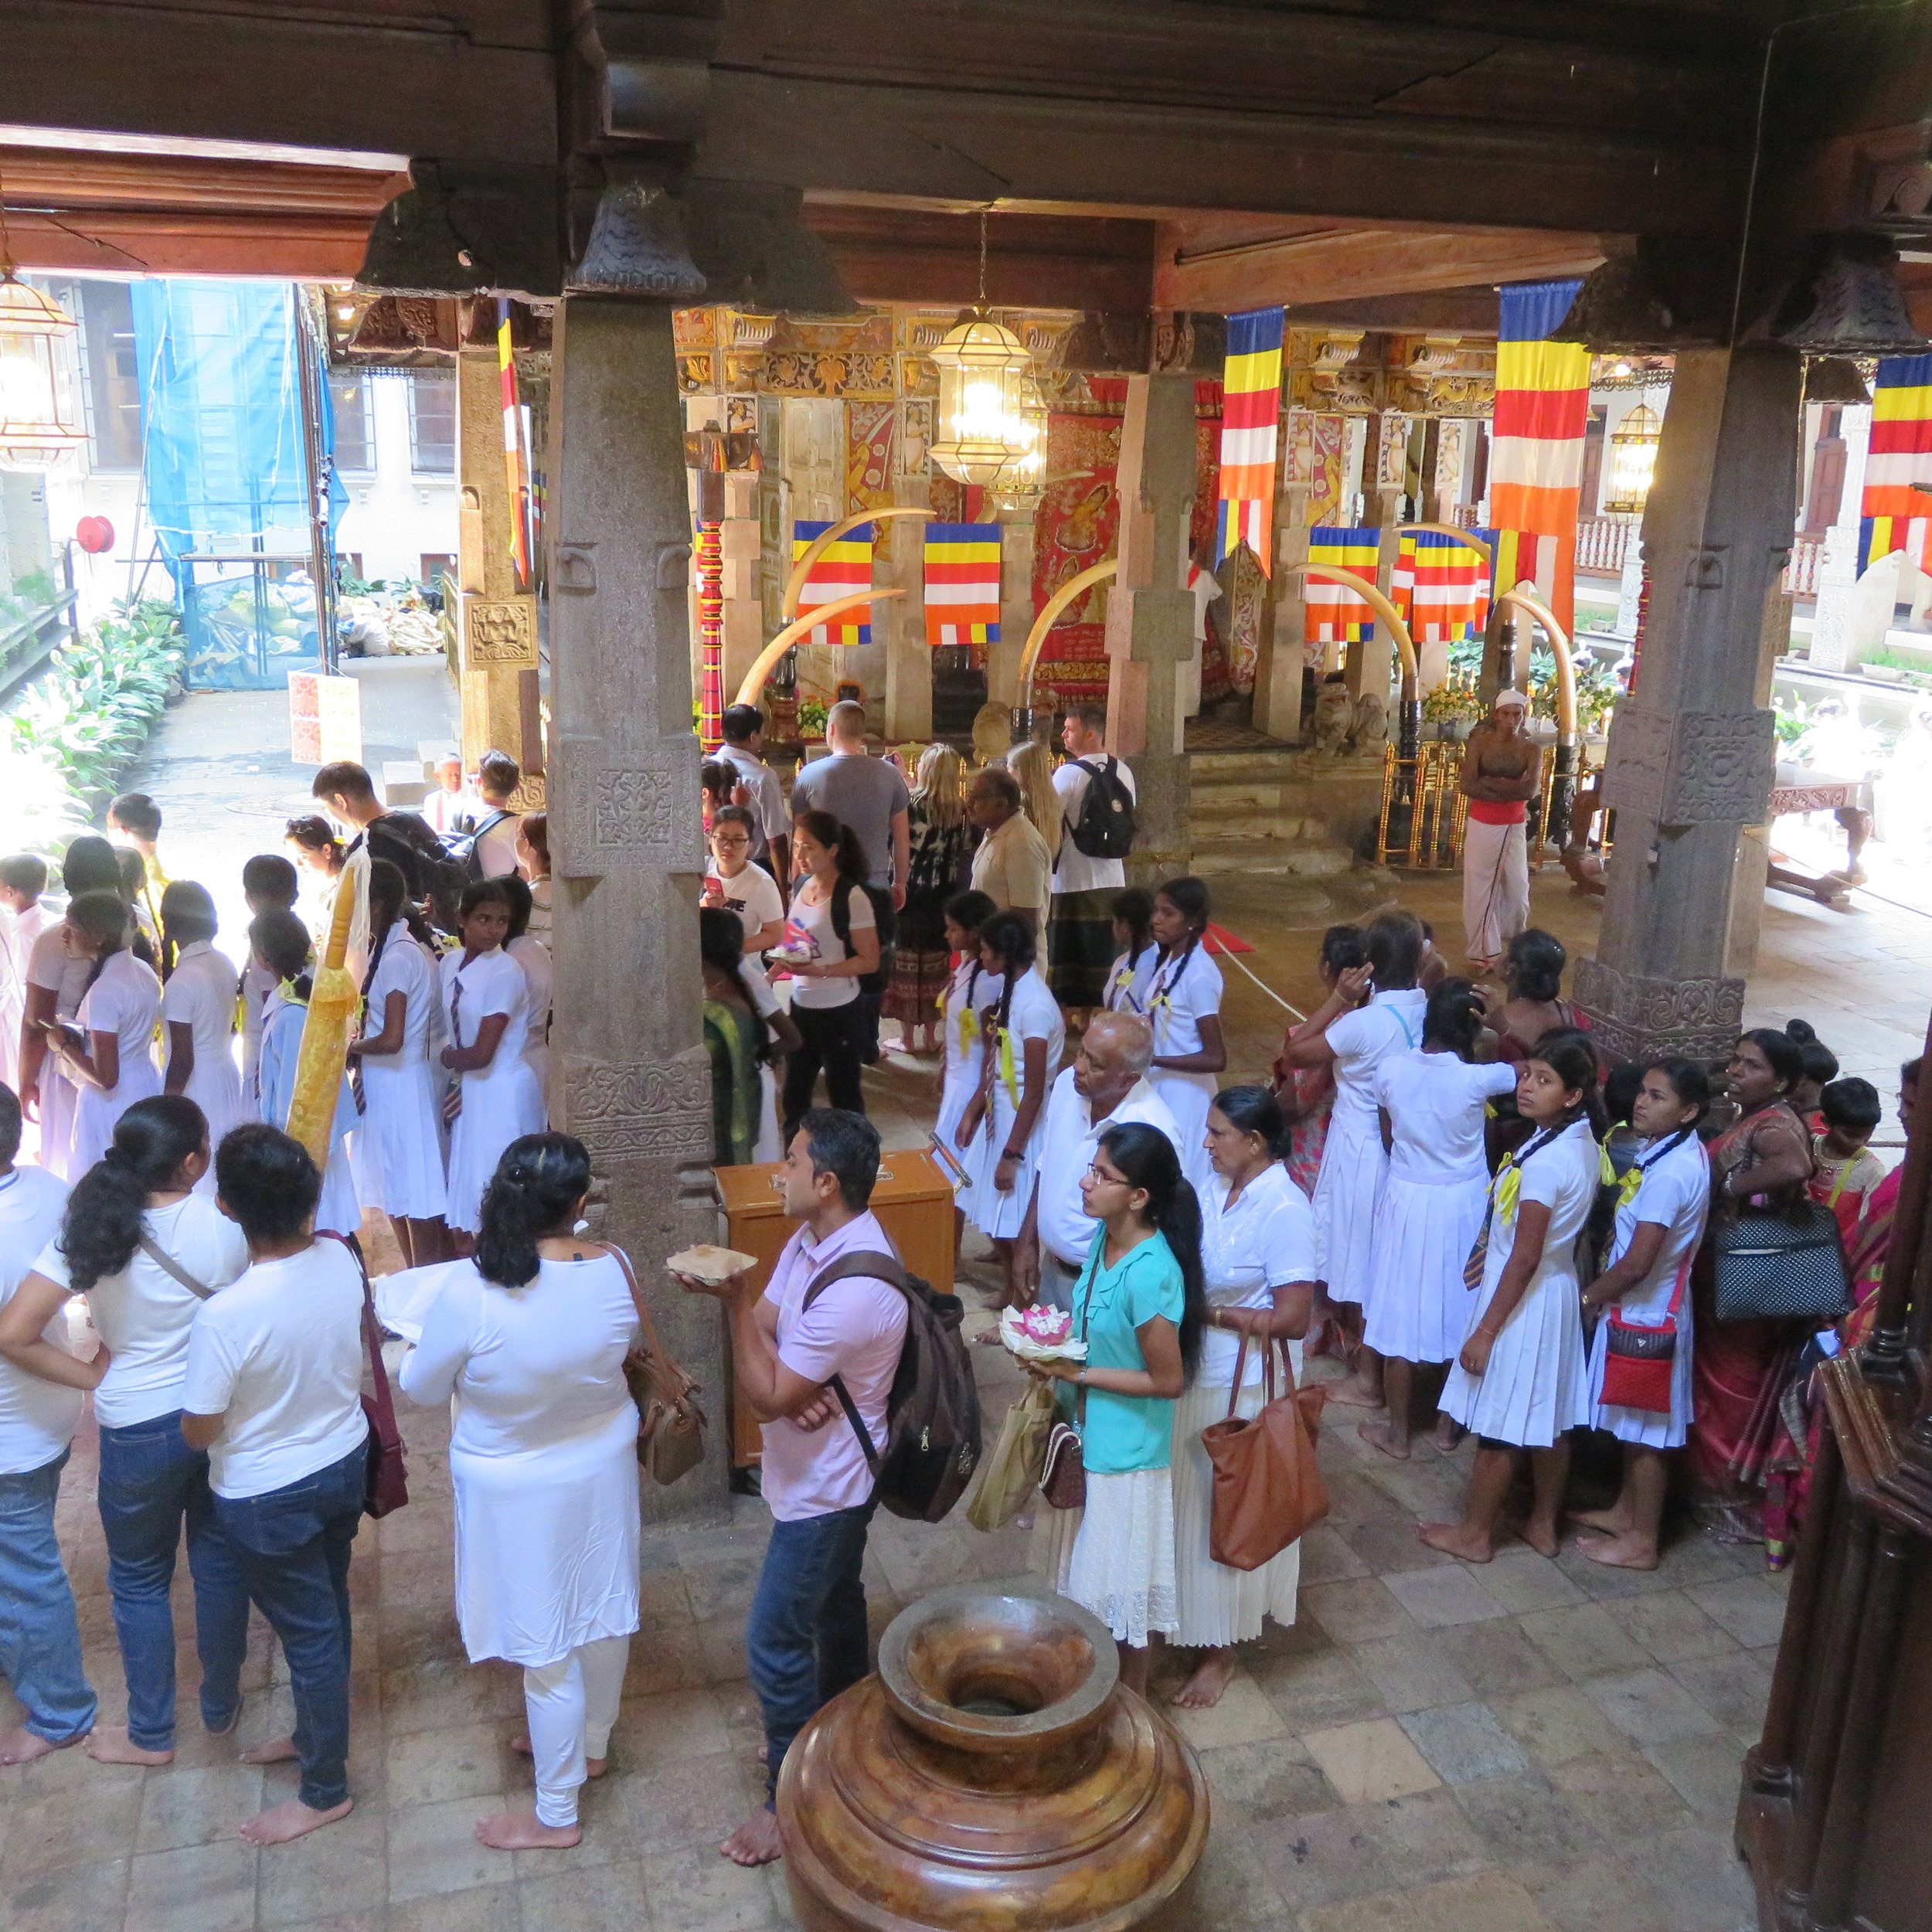 invite-to-paradise-sri-lanka-specialists-thomas-family-holiday-tour-temple of the tooth.JPG